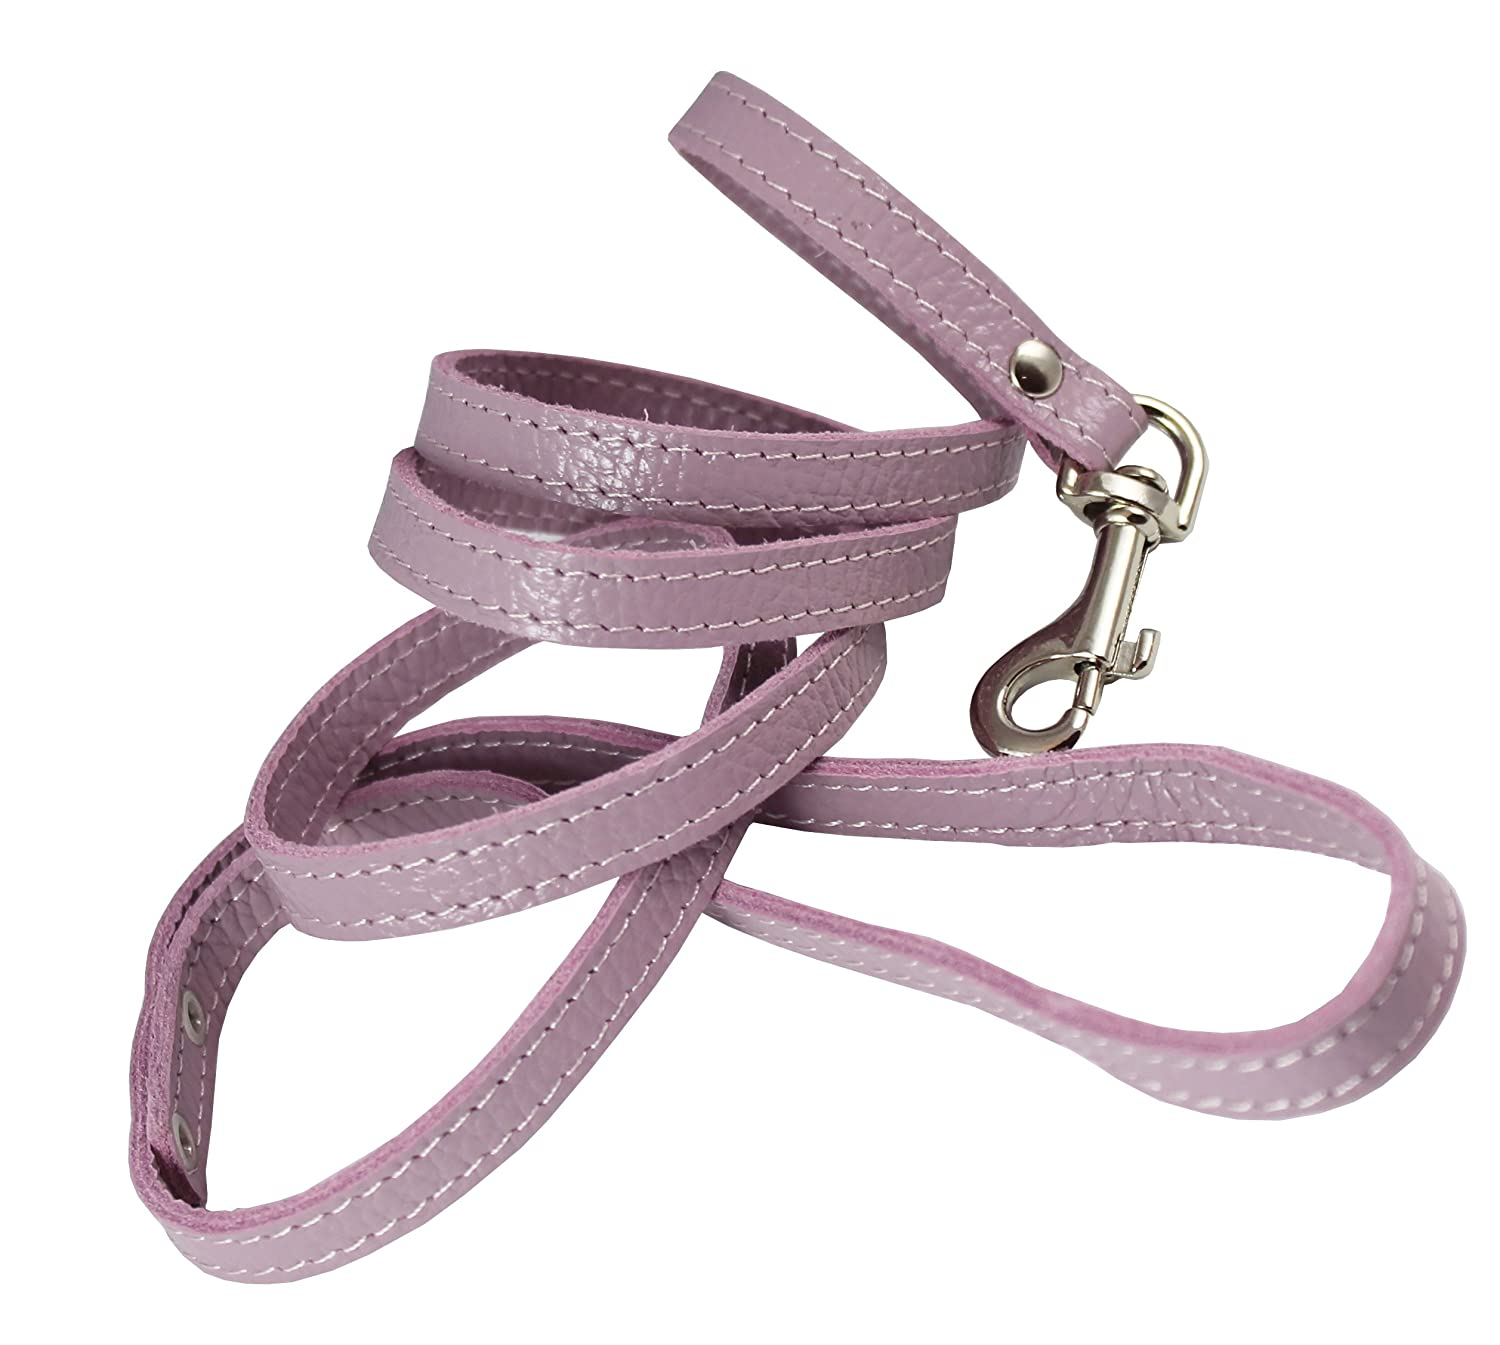 4-foot Genuine Leather 1 2  Wide Dog Leash for Small Breeds (purplec)